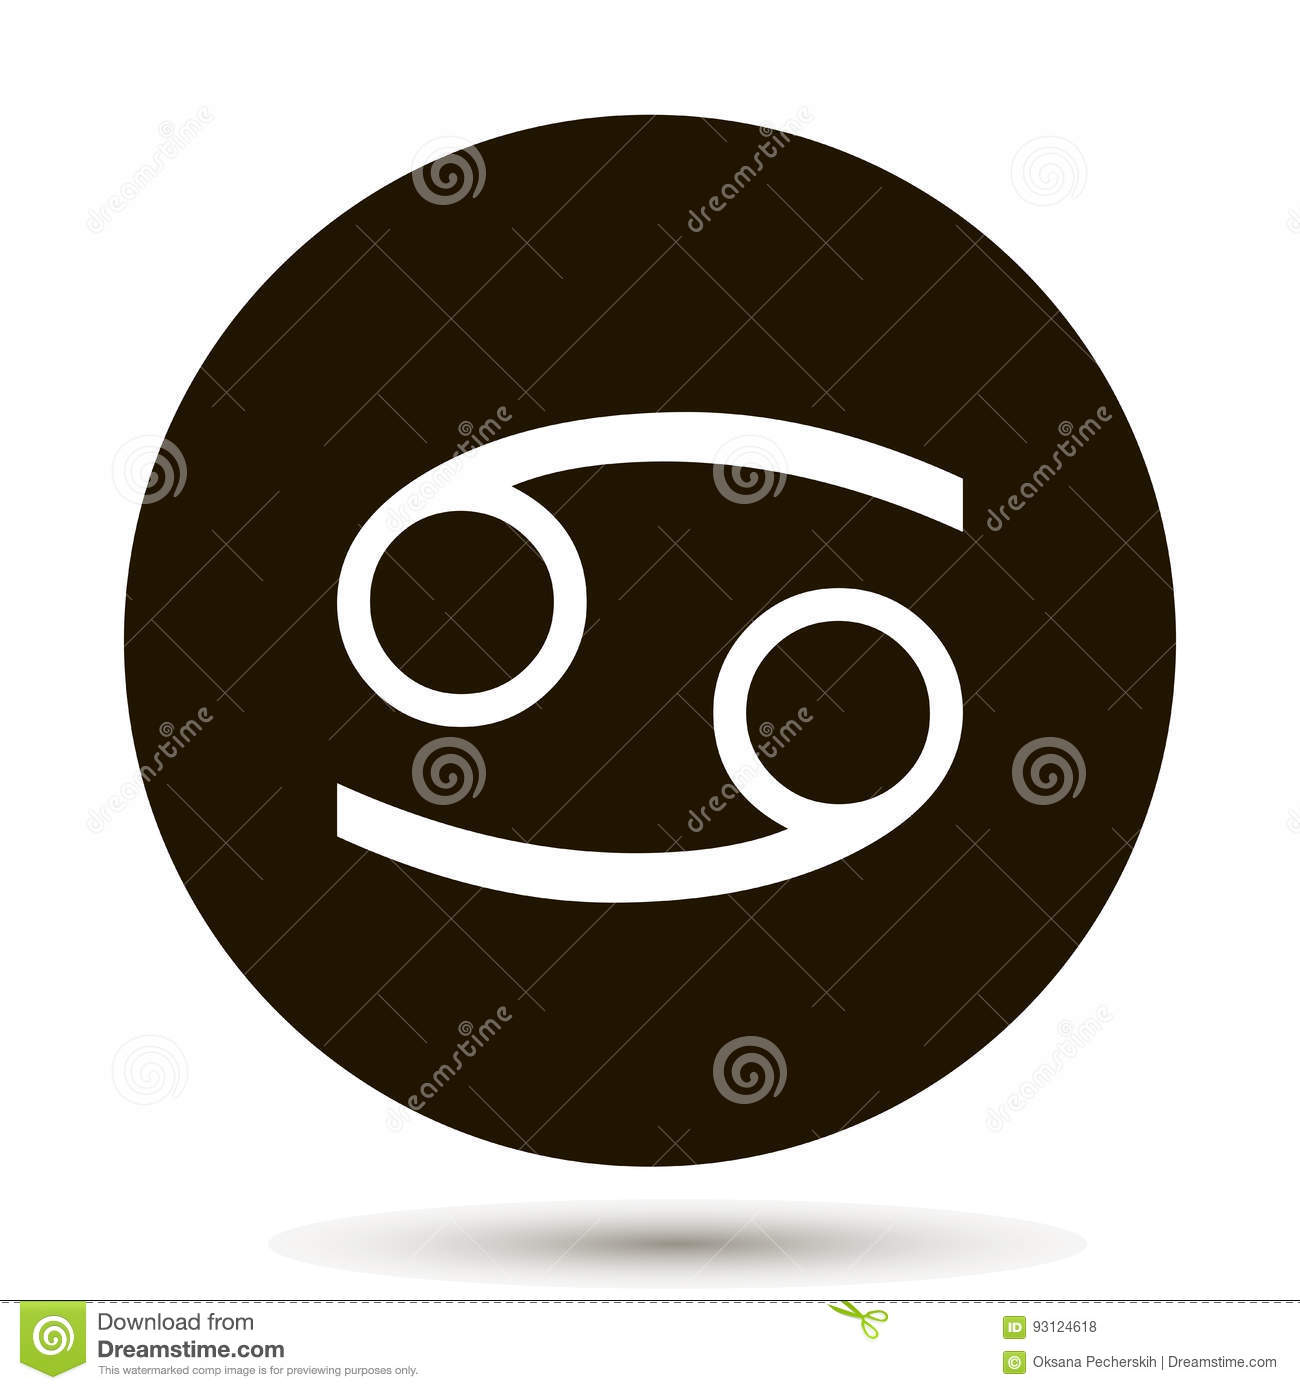 Cancer Zodiac Sign Astrological Symbol Icon In Circle Stock Vector